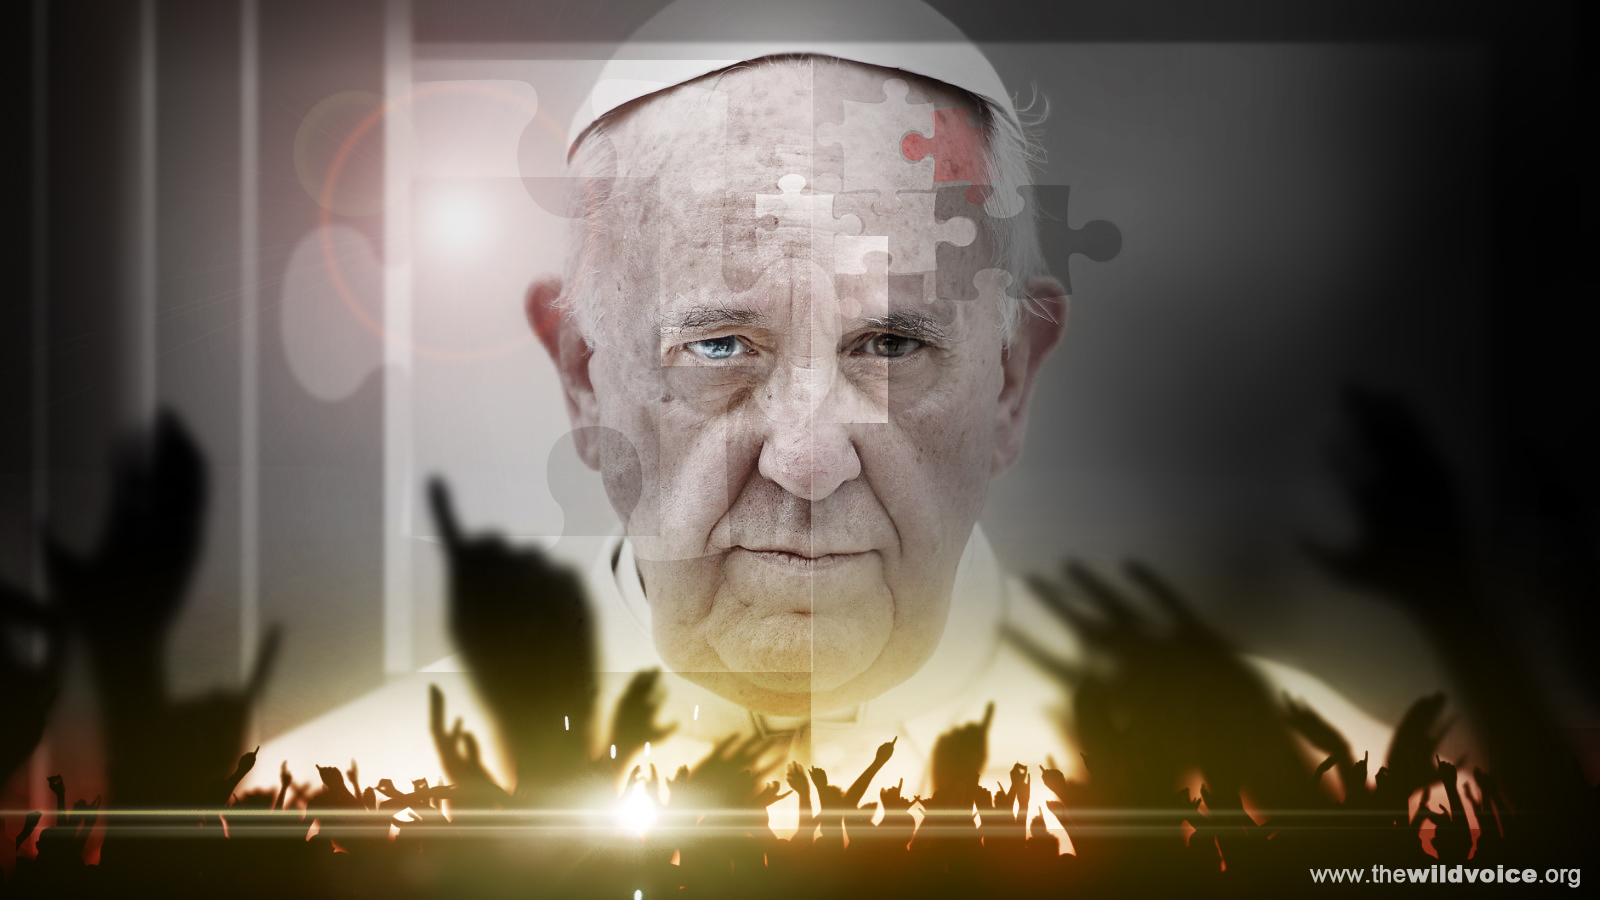 Pope Francis, False Prophet, Maria Divine Mercy, The Wild Voice, Satanic, NWO, Antichrist,